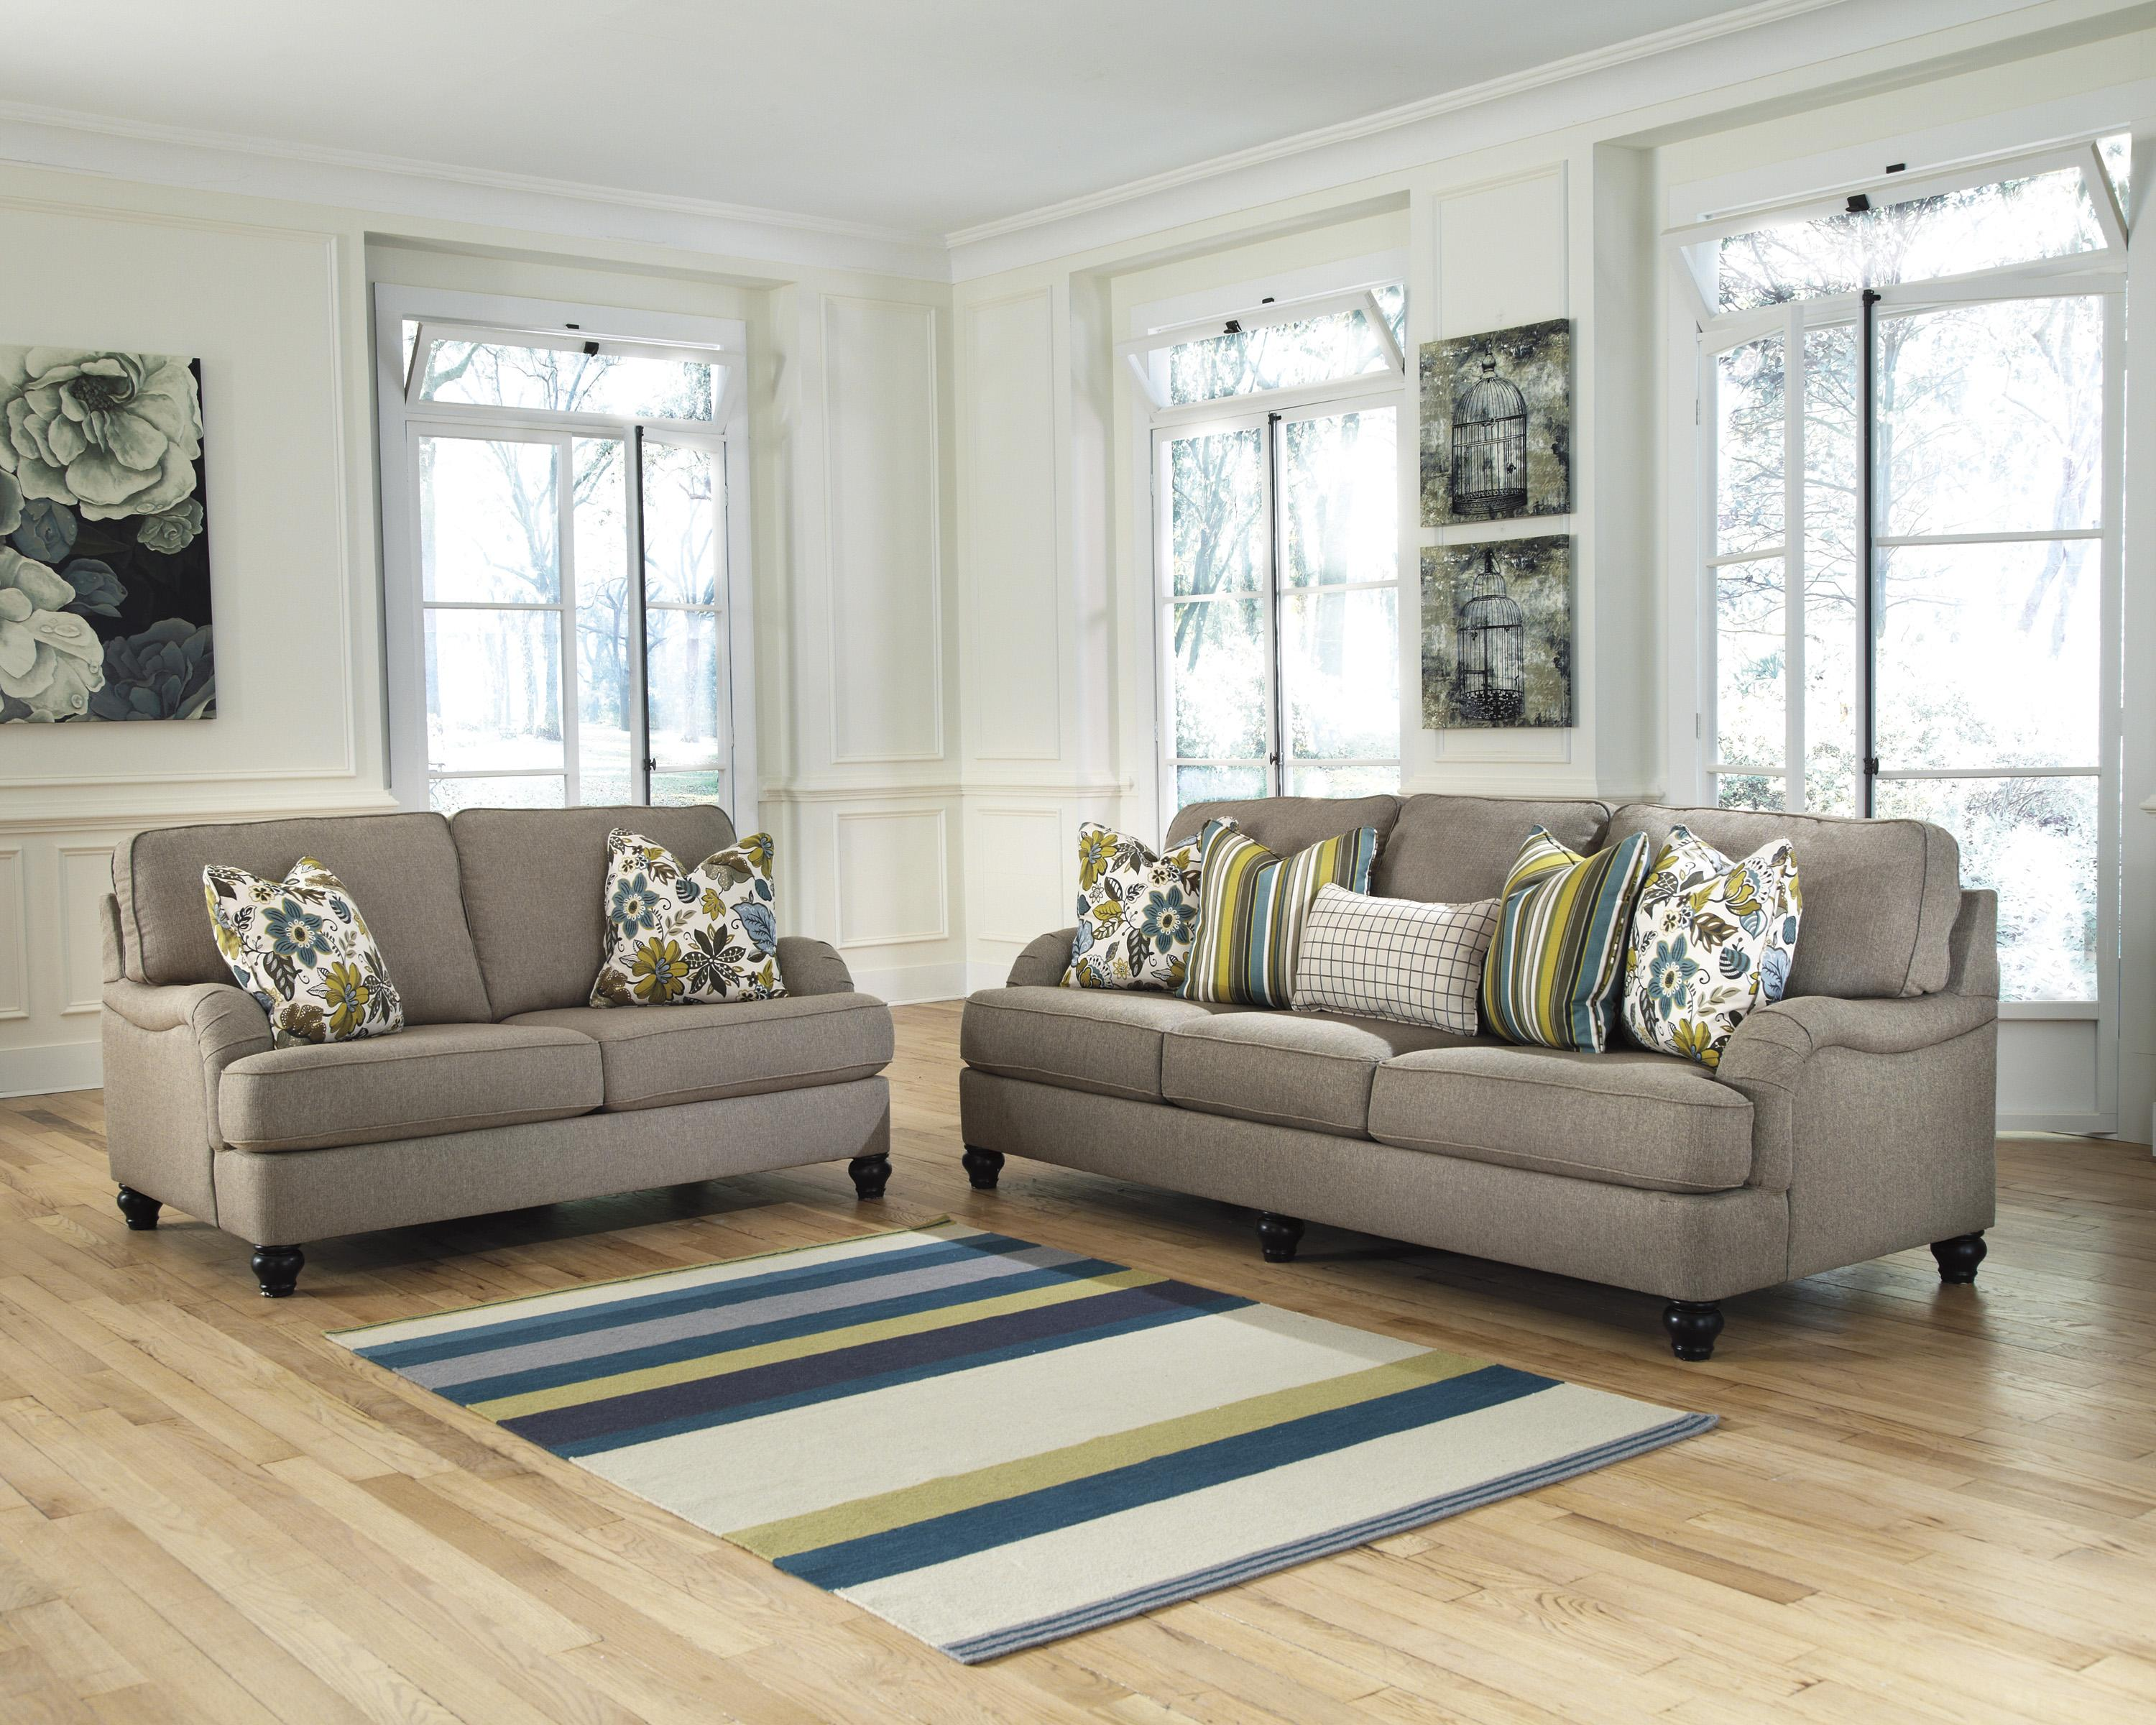 Ashley Furniture Hariston - Shitake Stationary Living Room Group - Item Number: 25500 Living Room Group 1